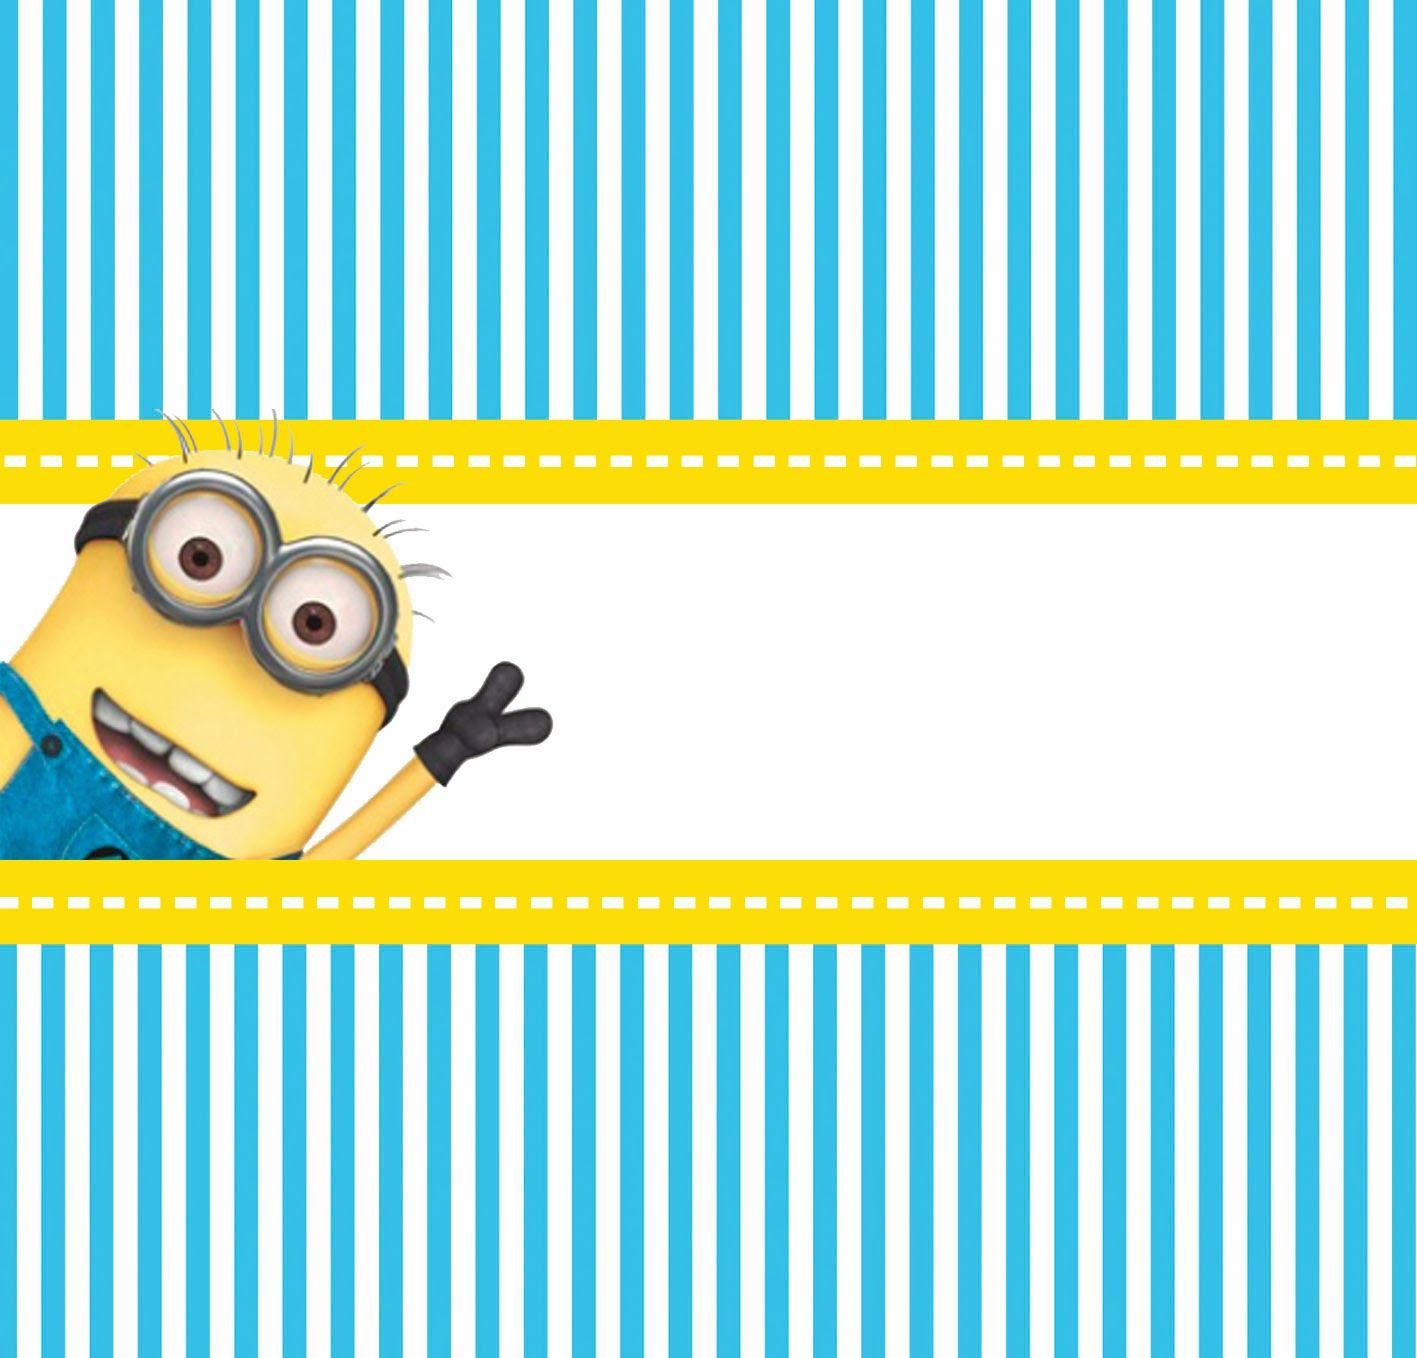 Despicable Me Free Printable Candy Bar Labels. | Minions | Pinterest - Free Printable Minion Food Labels